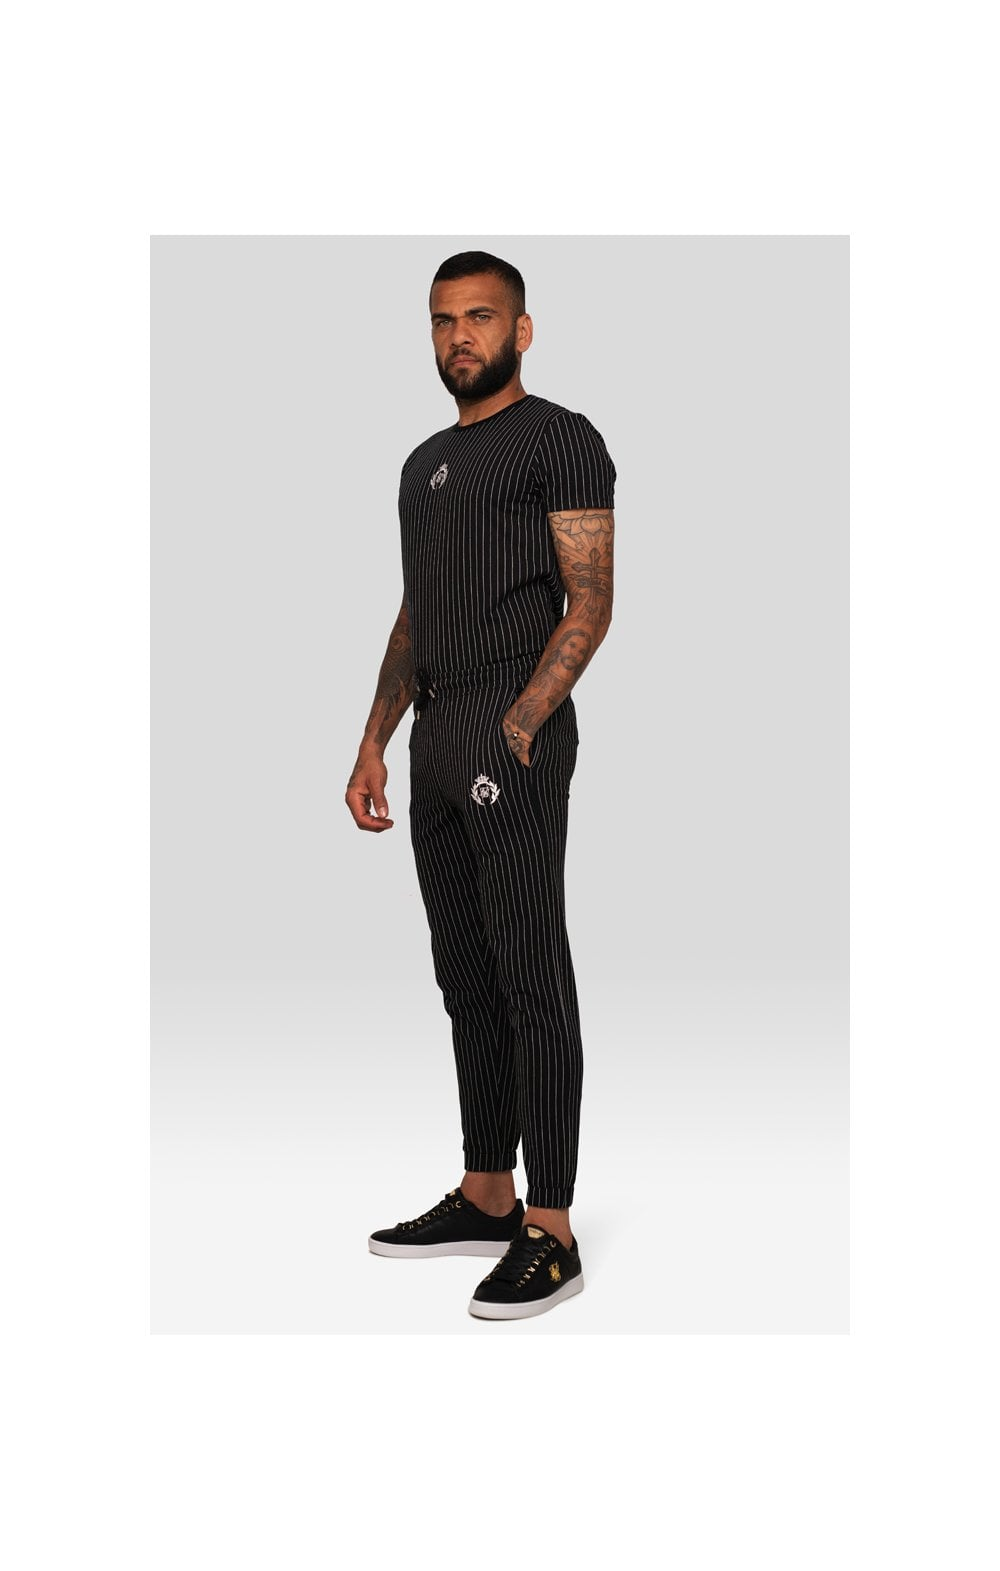 SikSilk x Dani Alves Curved Hem Gym Tee – Black & White (2)